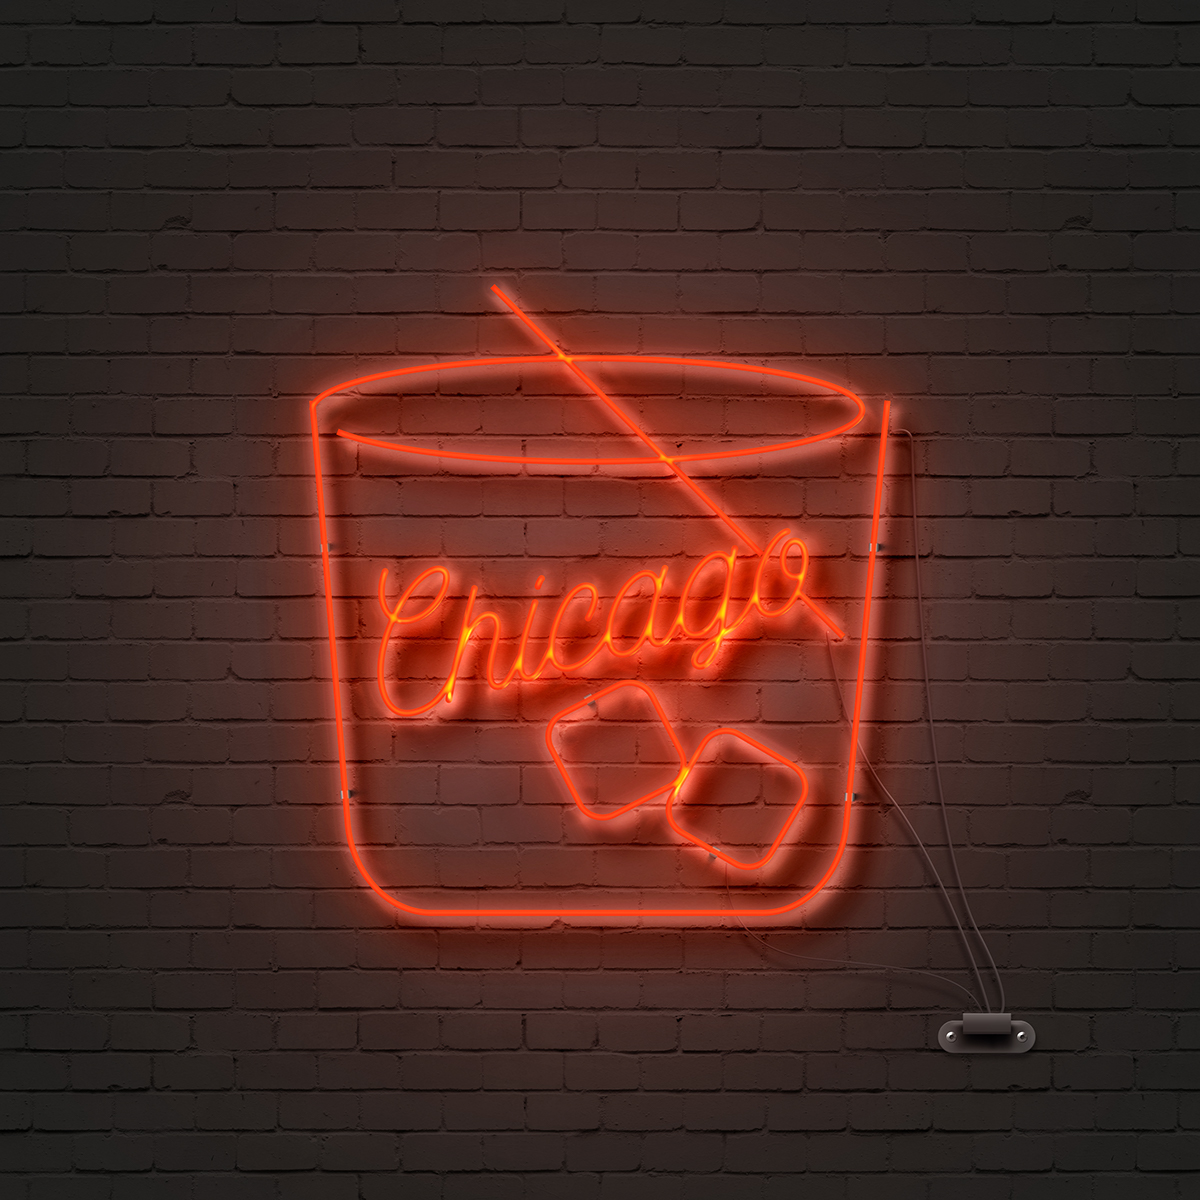 Chicago (the musical) logo on Behance.